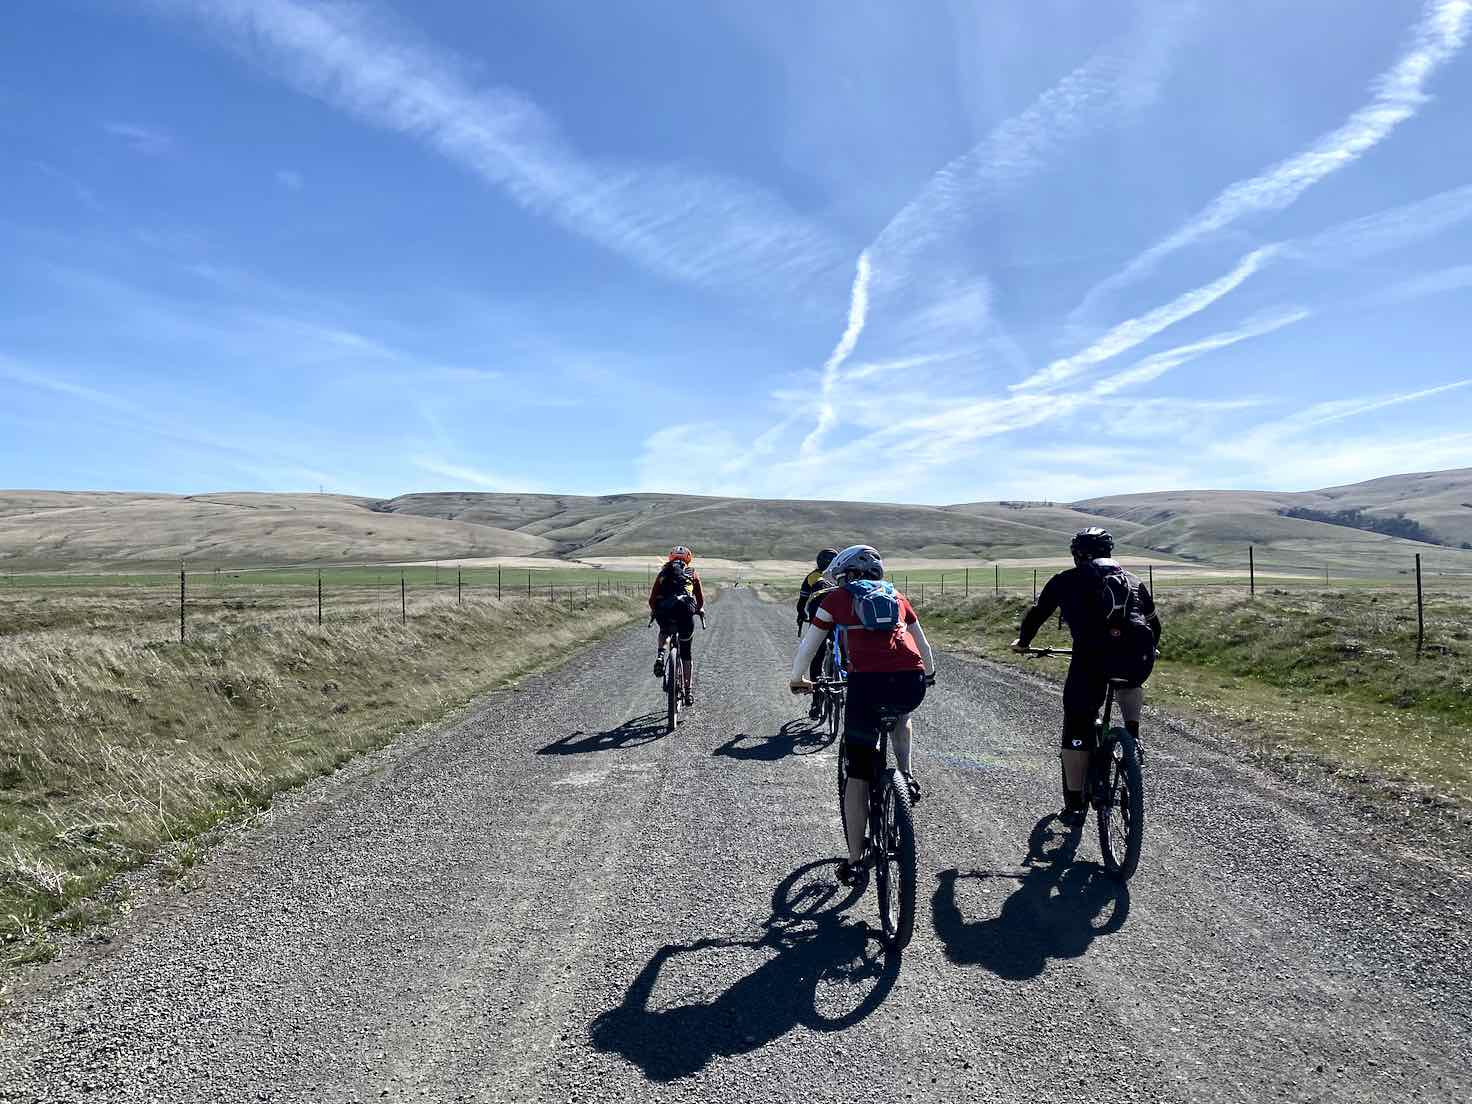 A group of gravel cyclists on Harms road near Centerville, Washington.